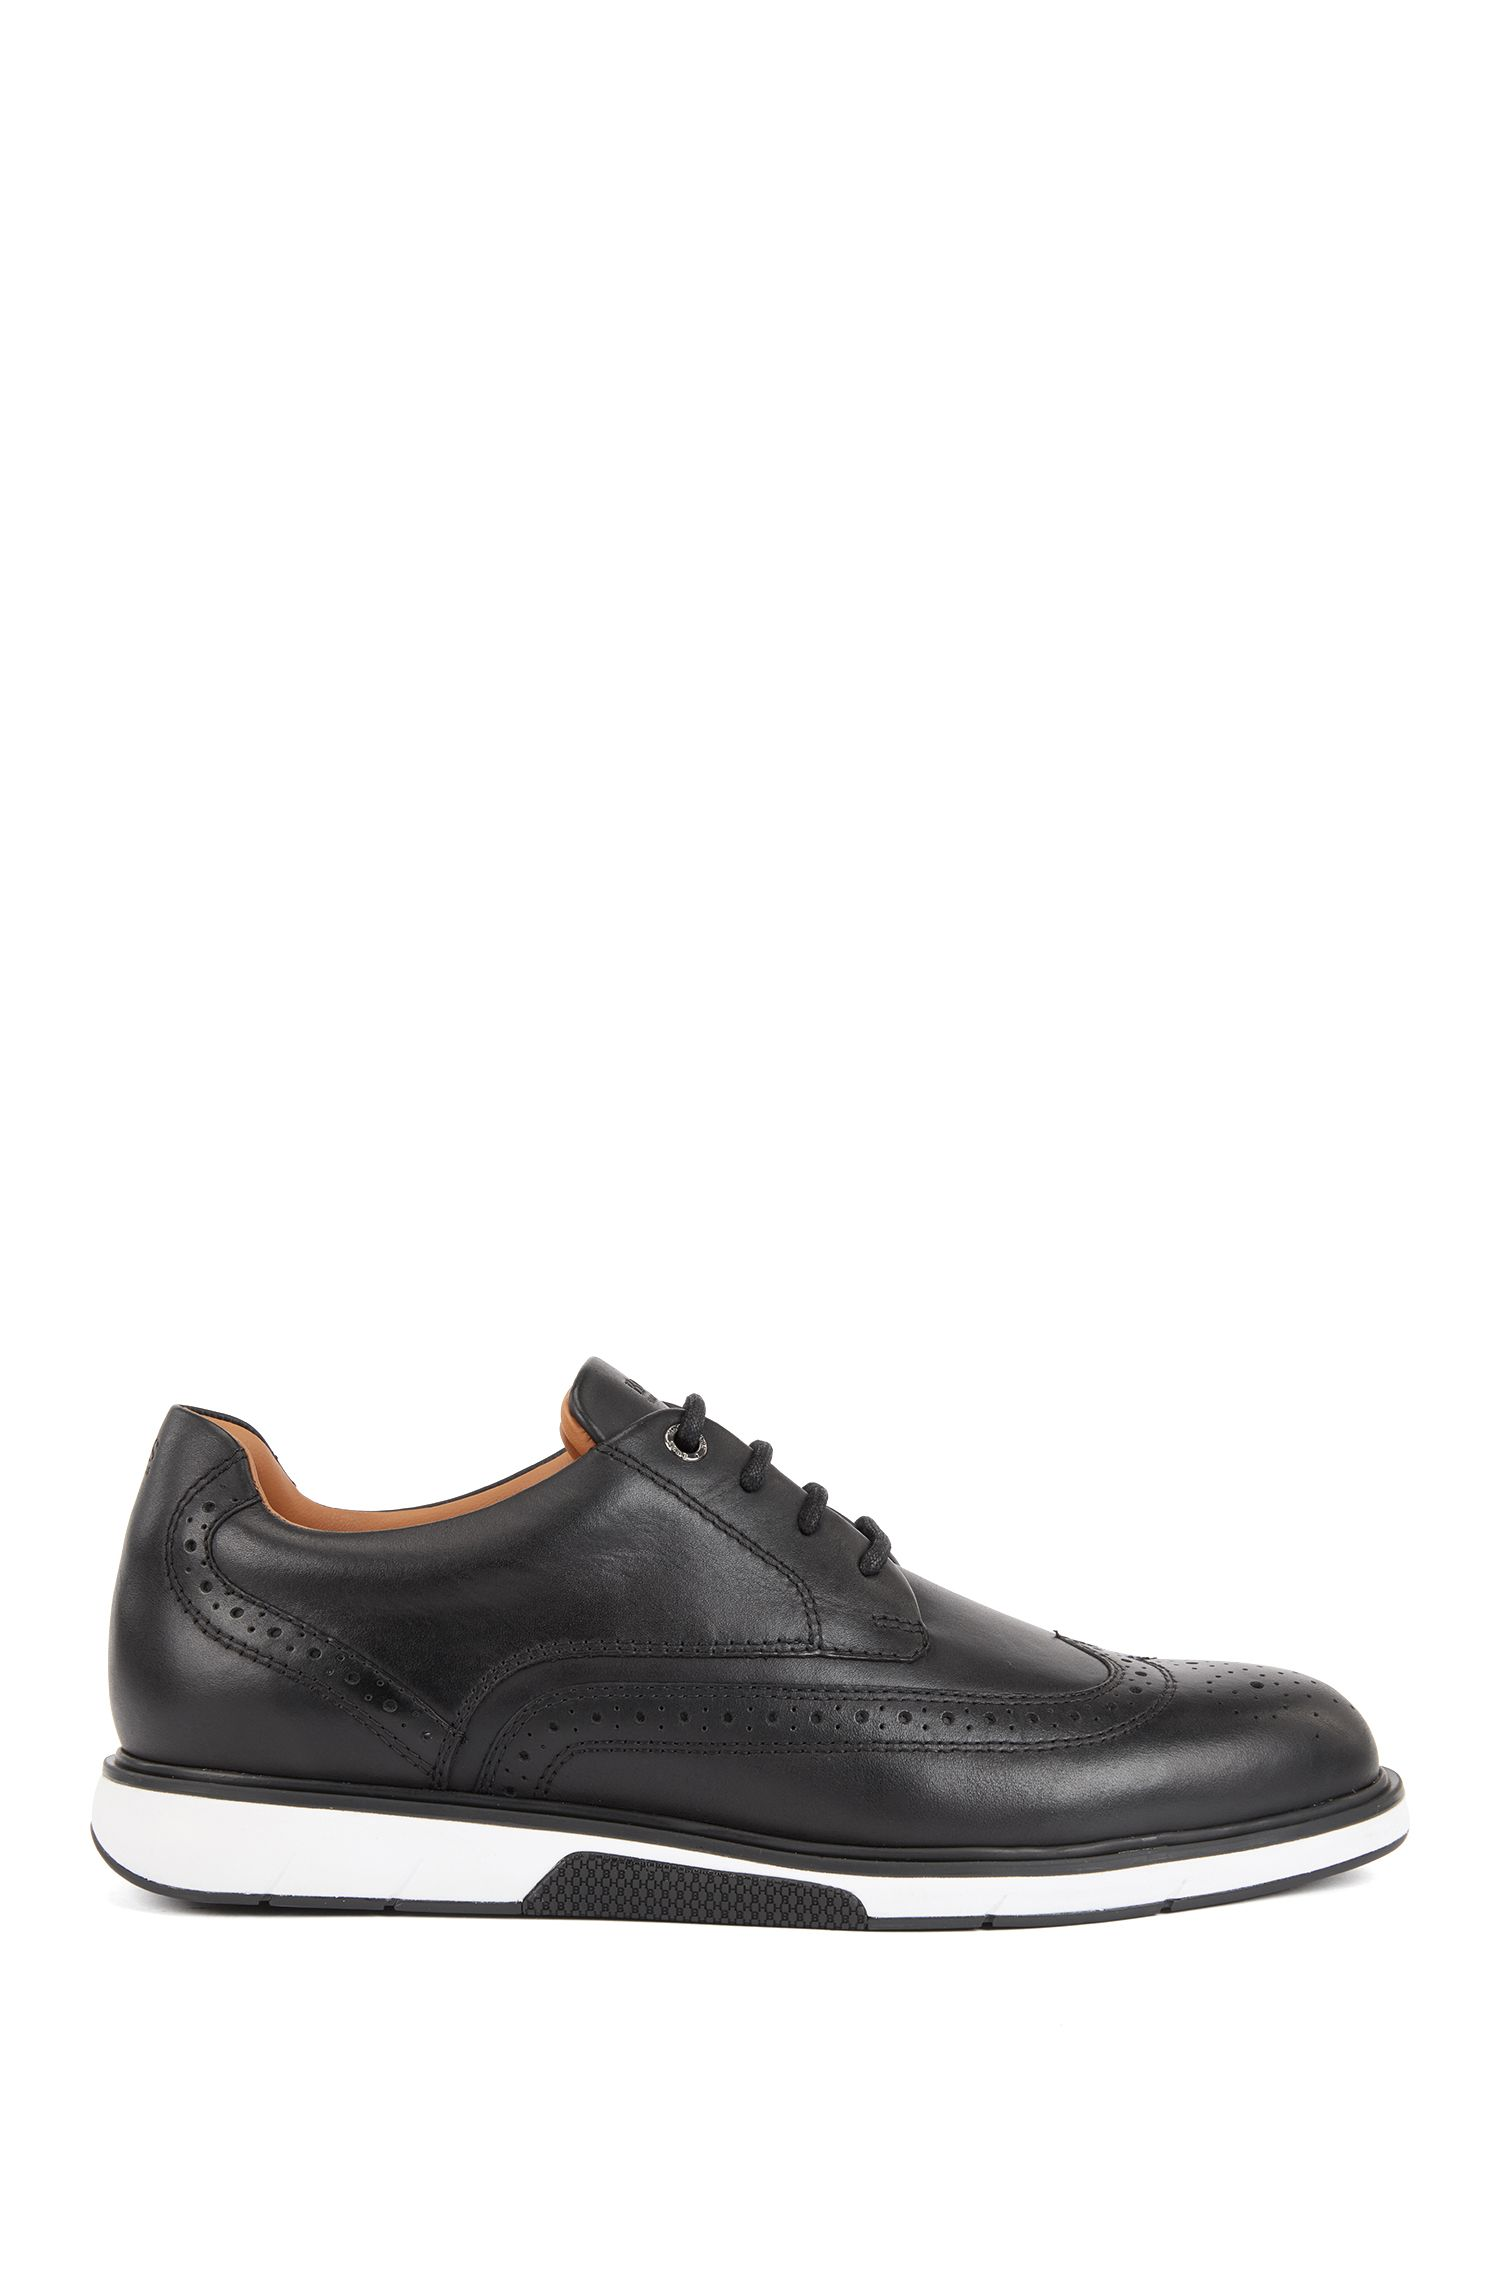 Leather Derby shoes with trainer-style sole, Black